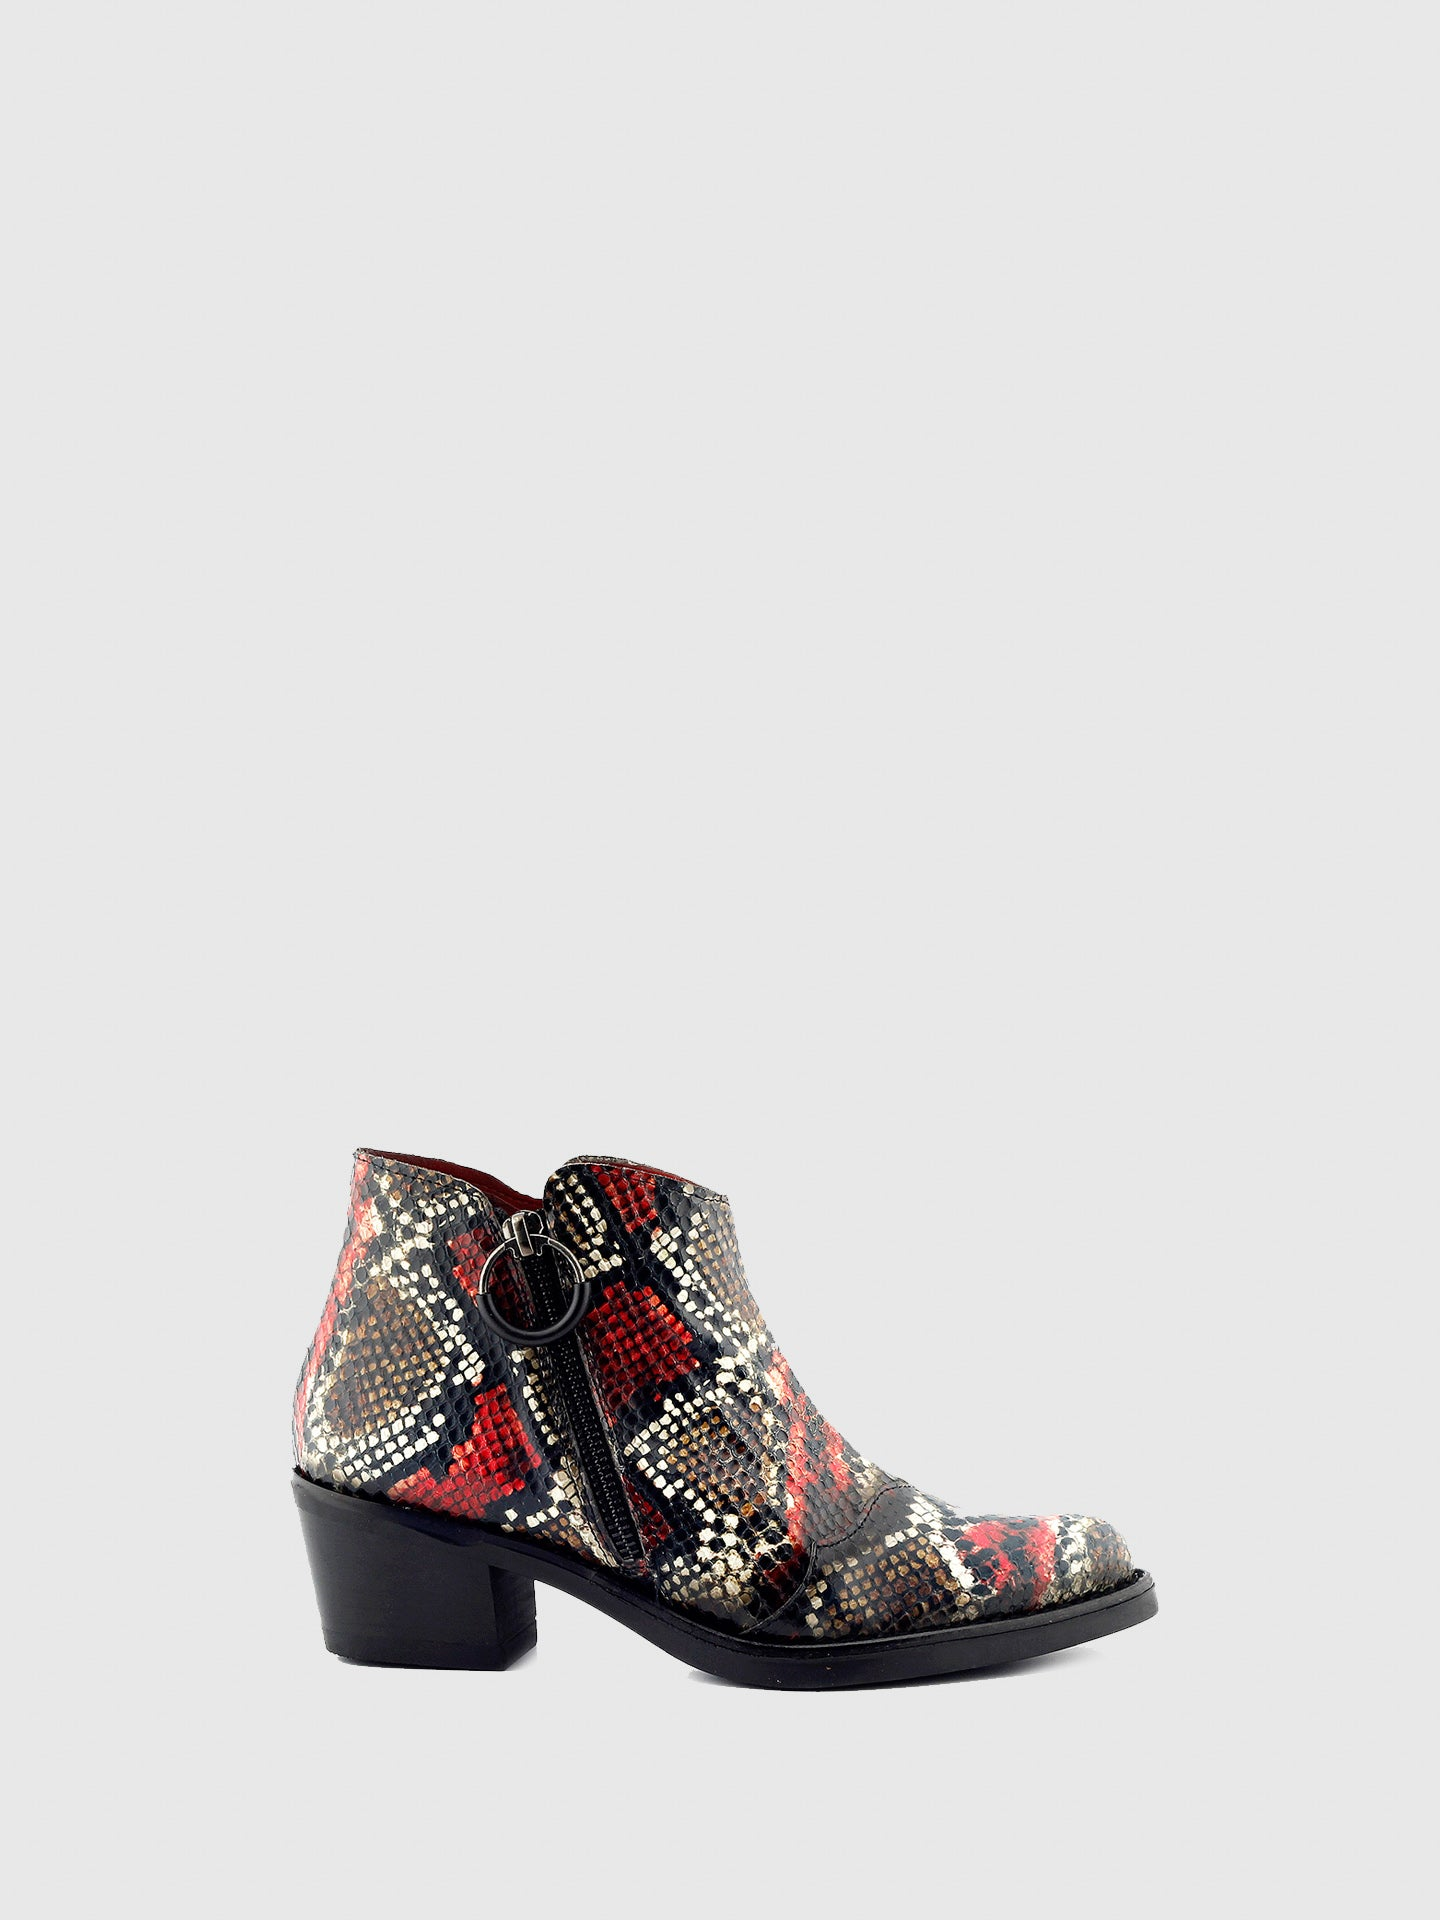 Jose Saenz Red Black Cowboy Ankle Boots